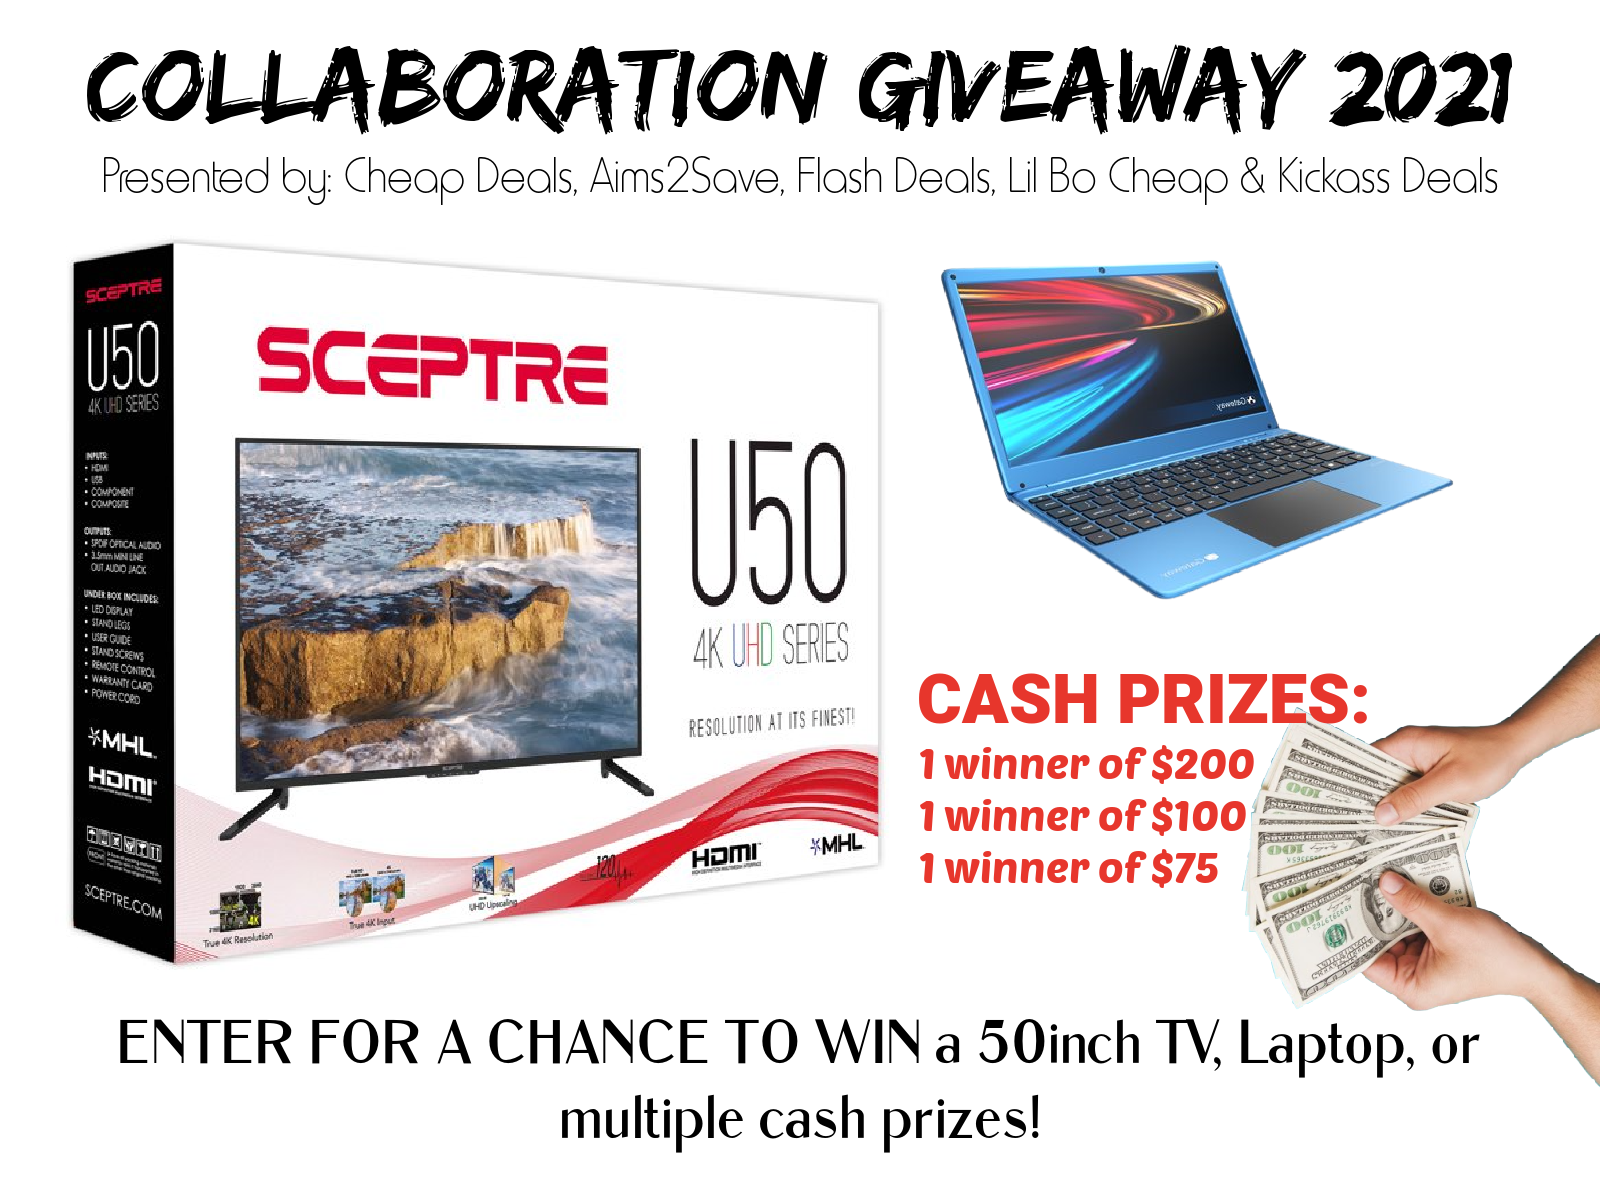 50inch TV, Laptop or CASH. Collaboration Giveaway 2021 Giveaway Image